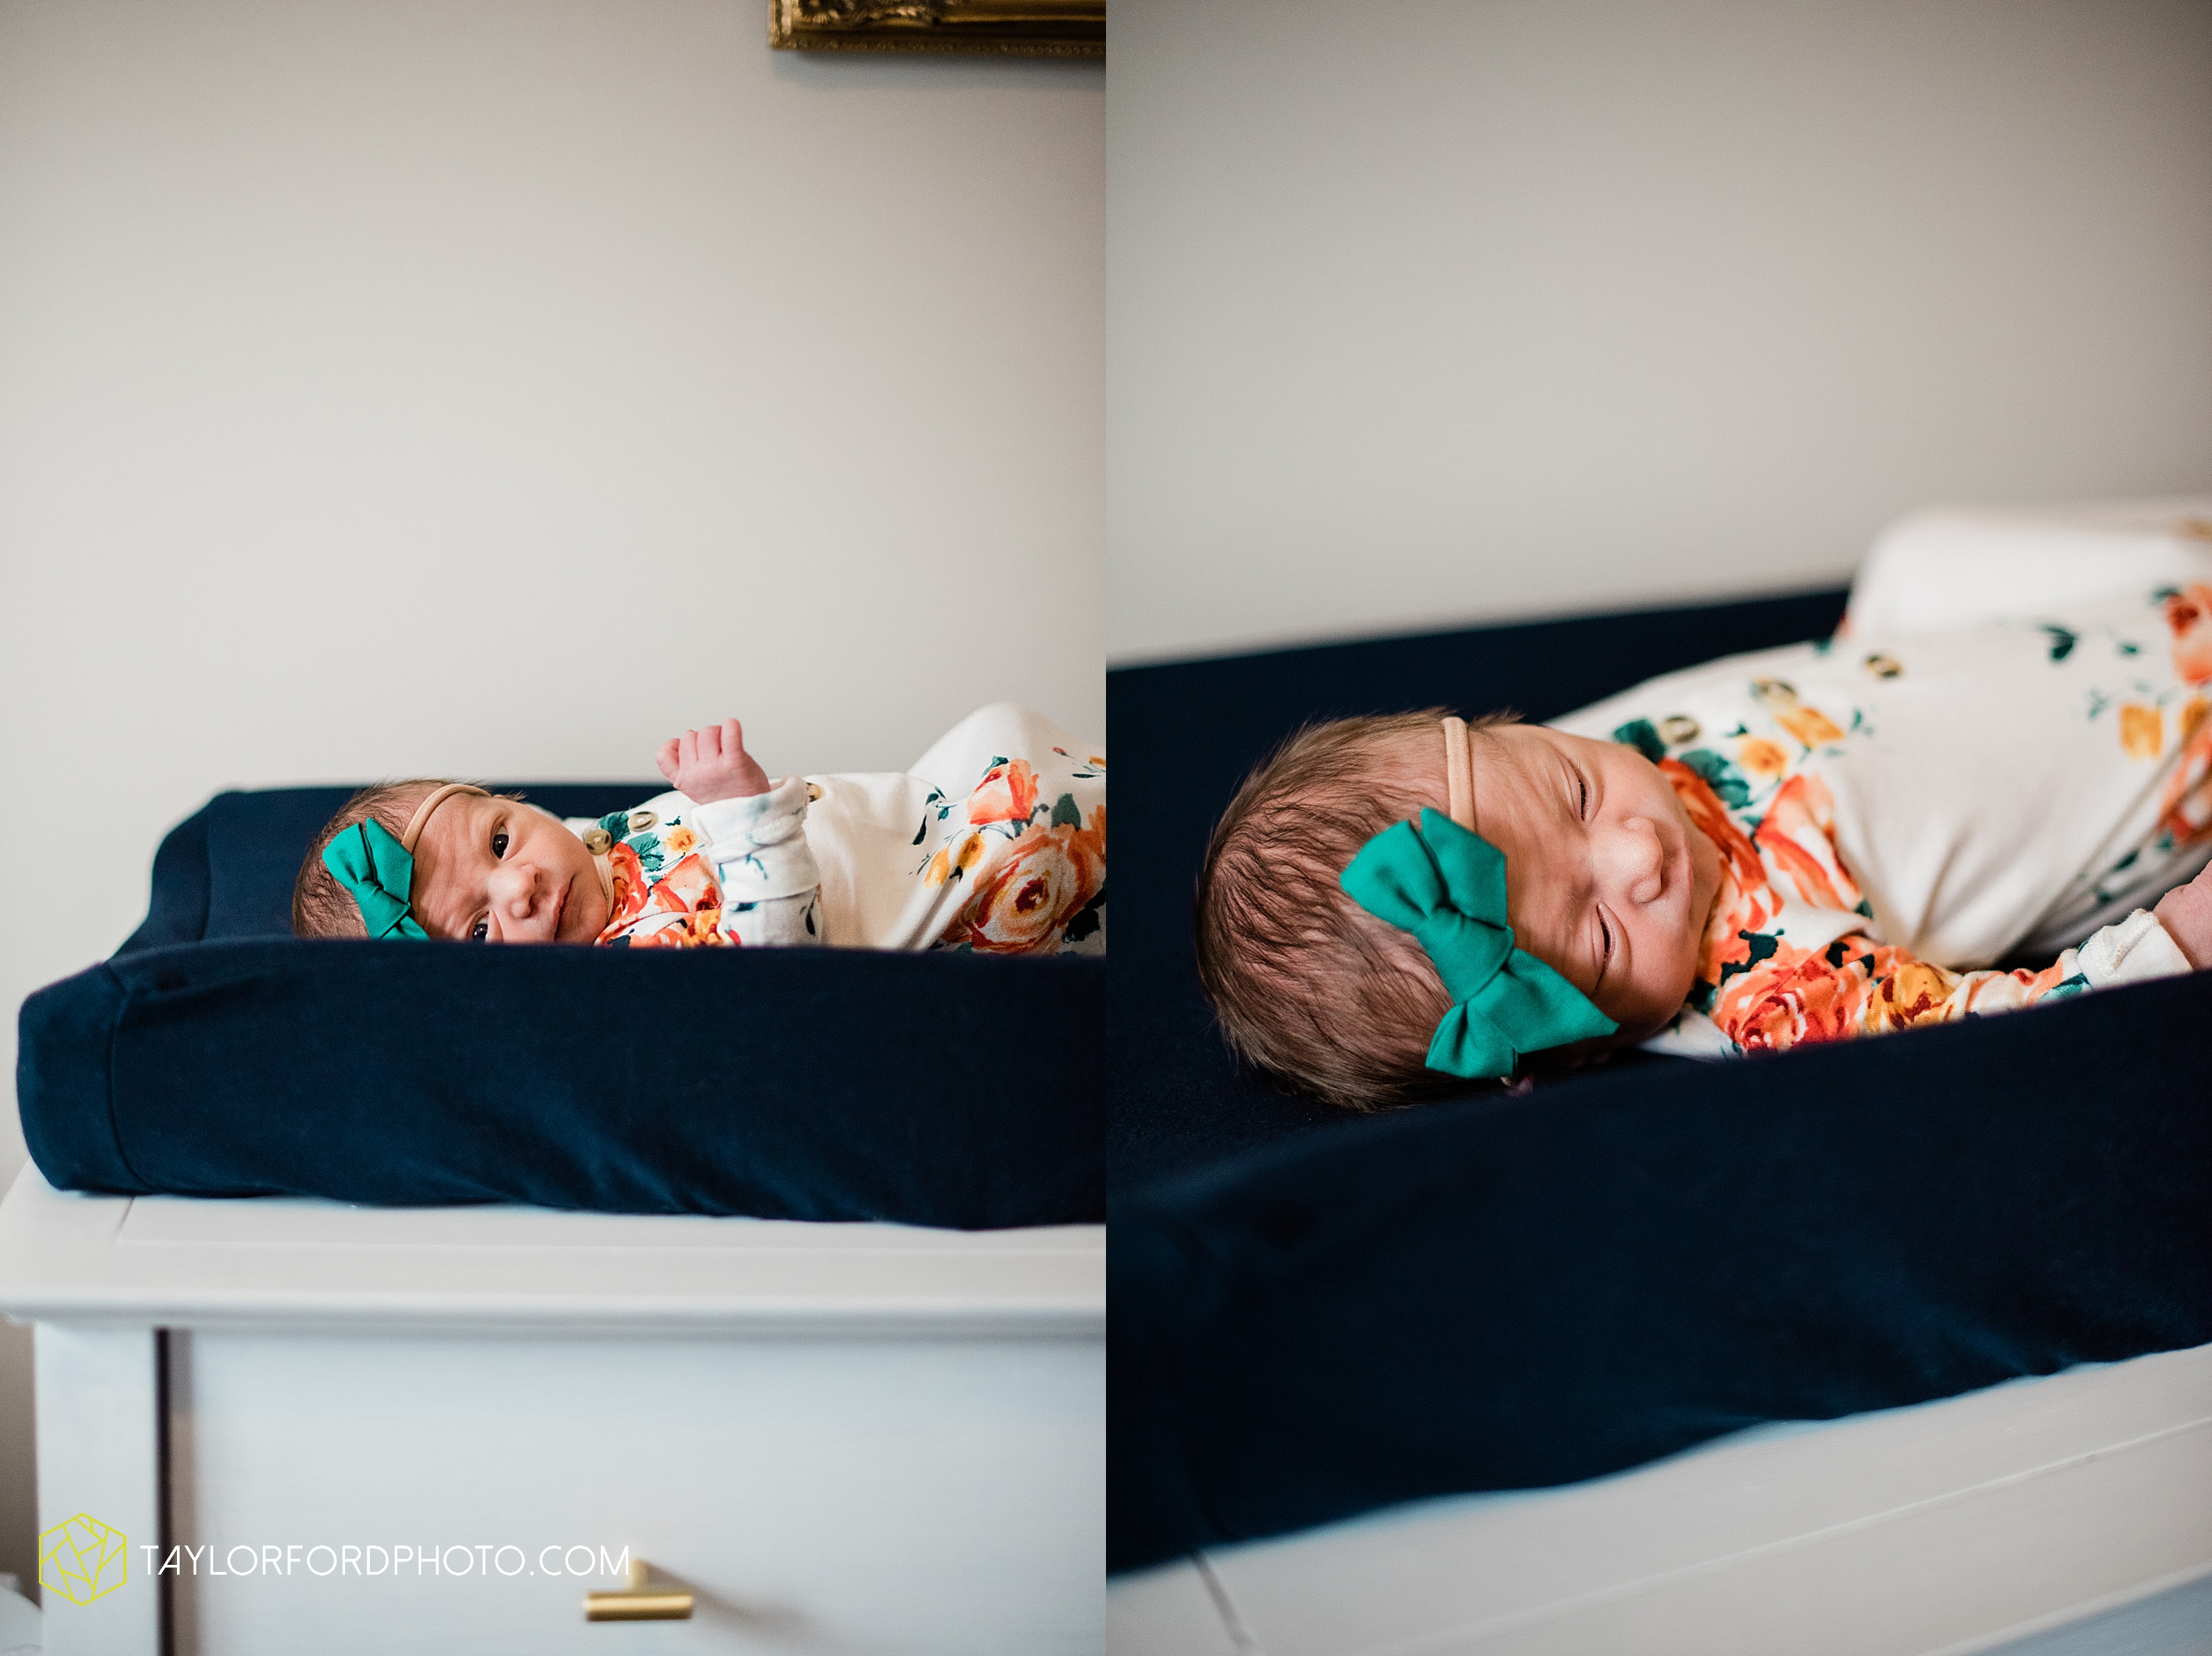 ashley-aaron-noraa-lifestyle-at-home-family-newborn-blacklick-columbus-ohio-photography-taylor-ford-hirschy-photographer_2338.jpg